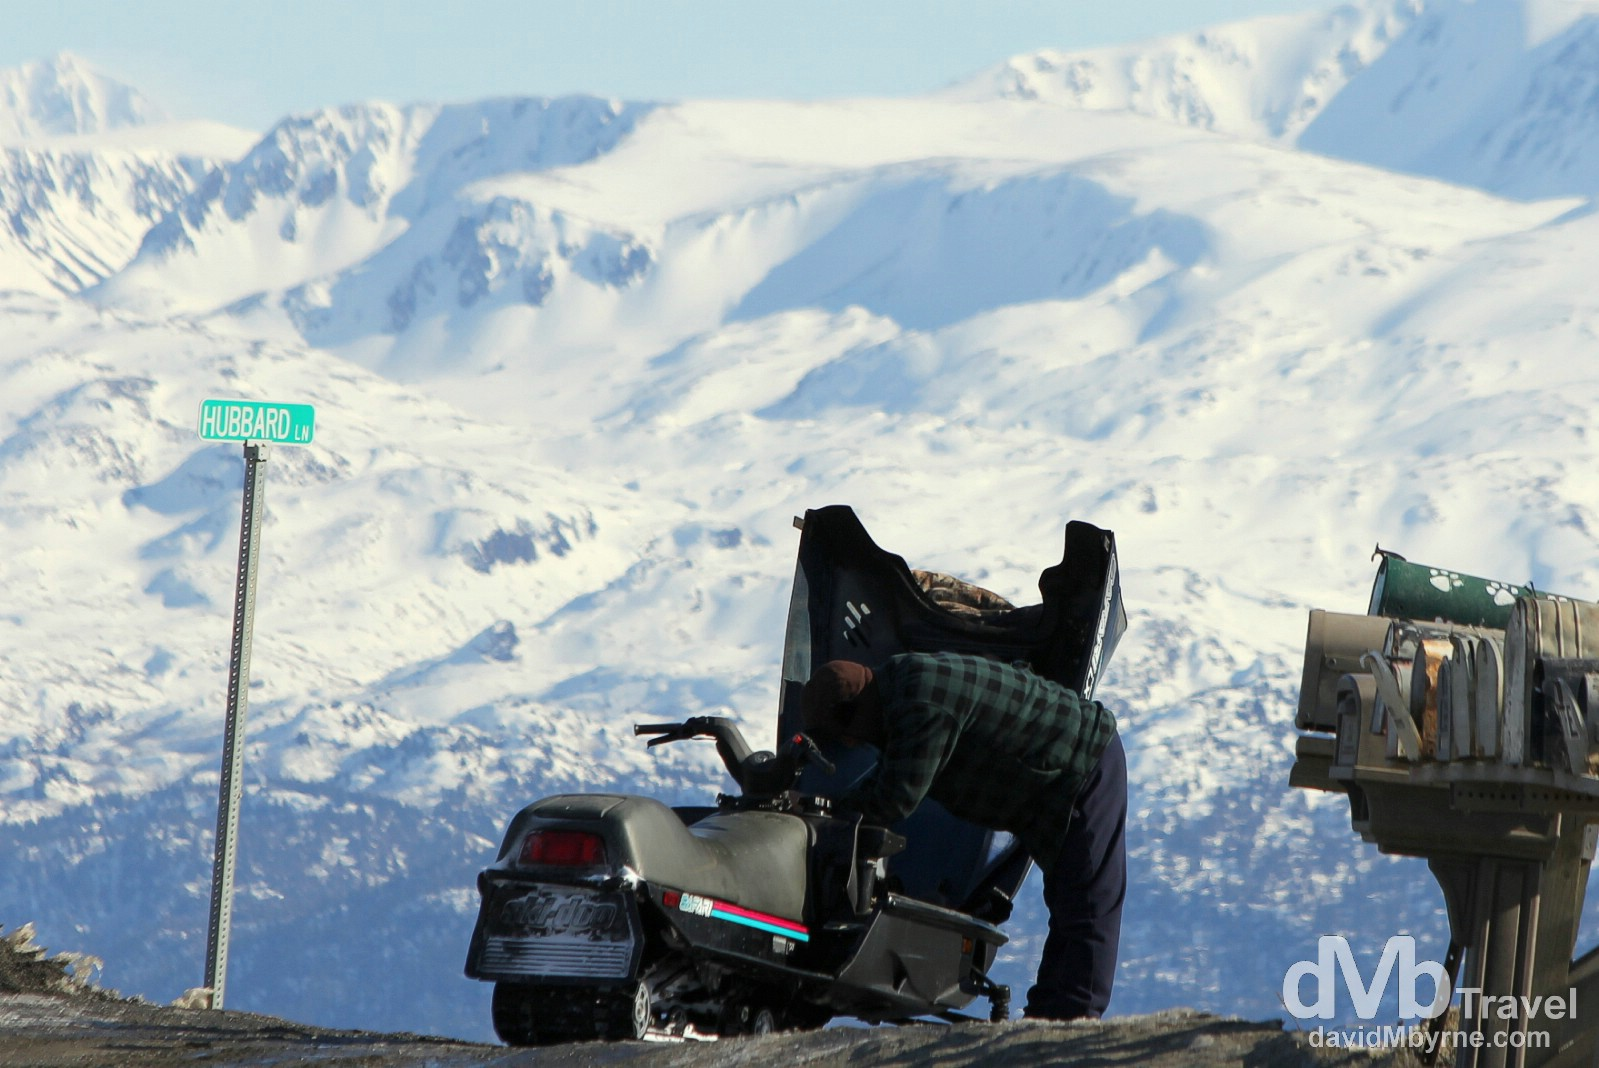 Tending to a snowmobile near Hubbard Lane on Skyline Drive, Homer, Kenai Peninsula, Alaska, USA. March 17th 2013.